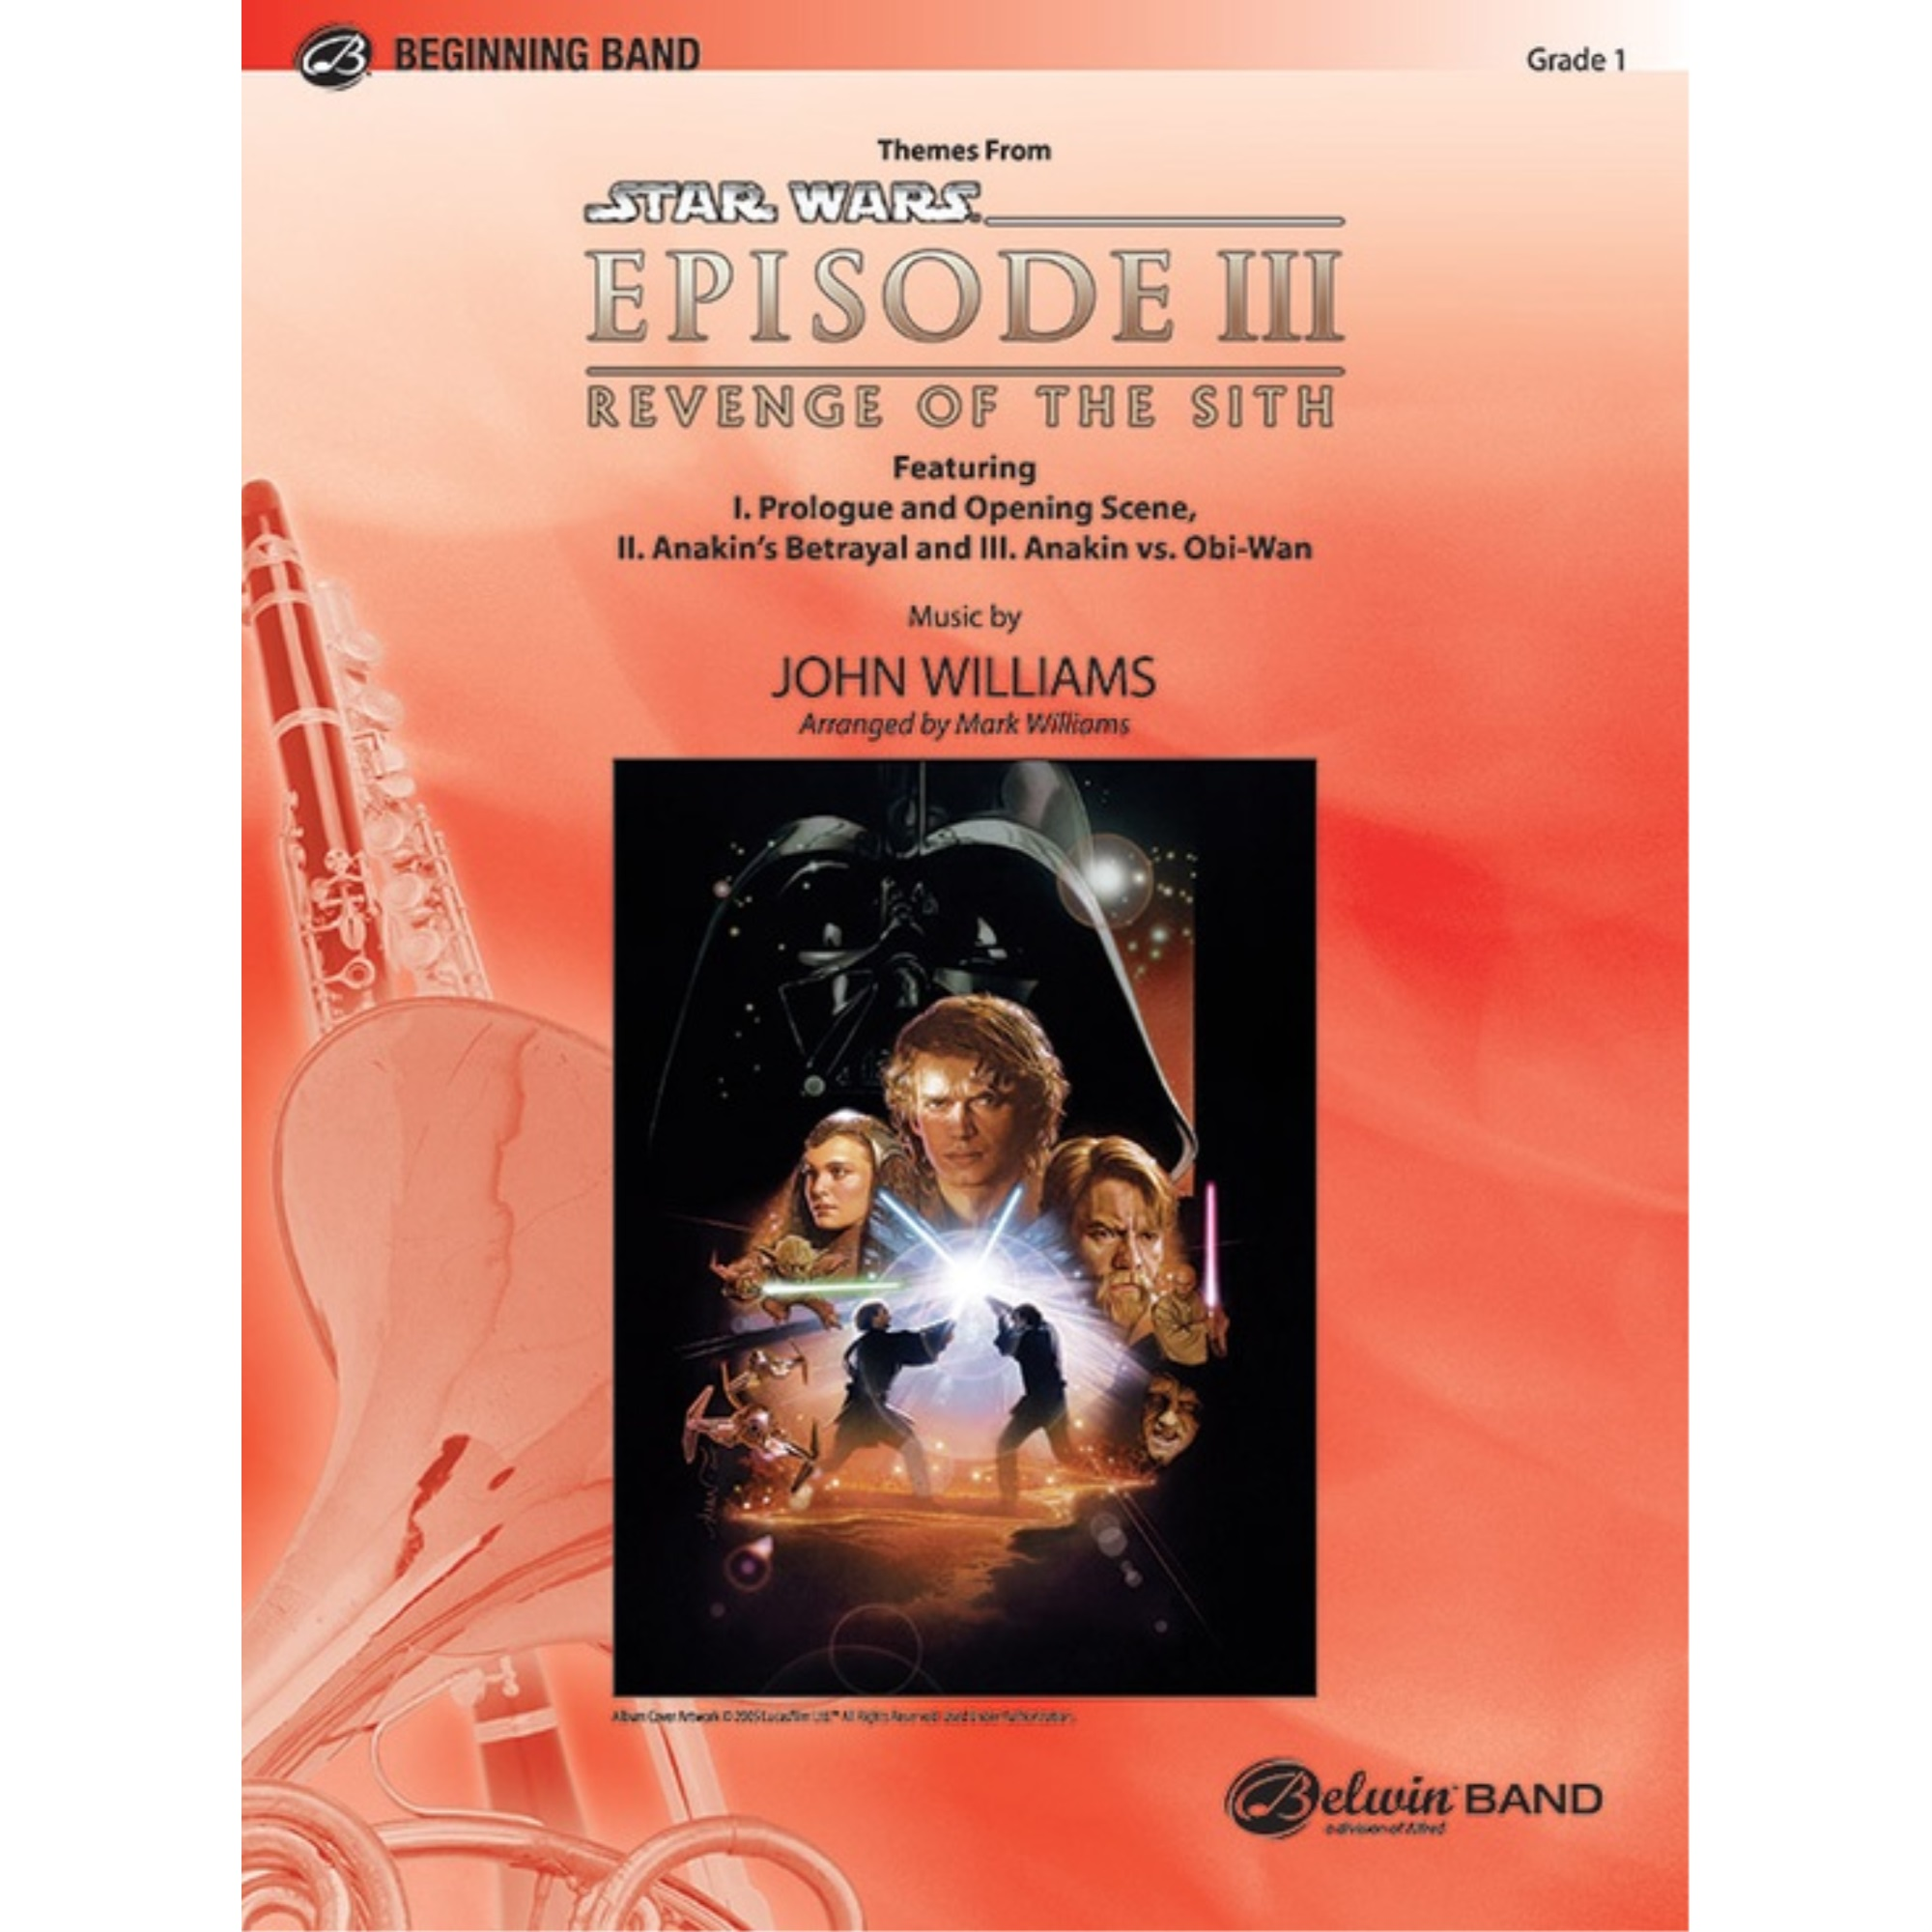 Star Wars Episode Iii Revenge Of The Sith Themes From Walmart Com Walmart Com